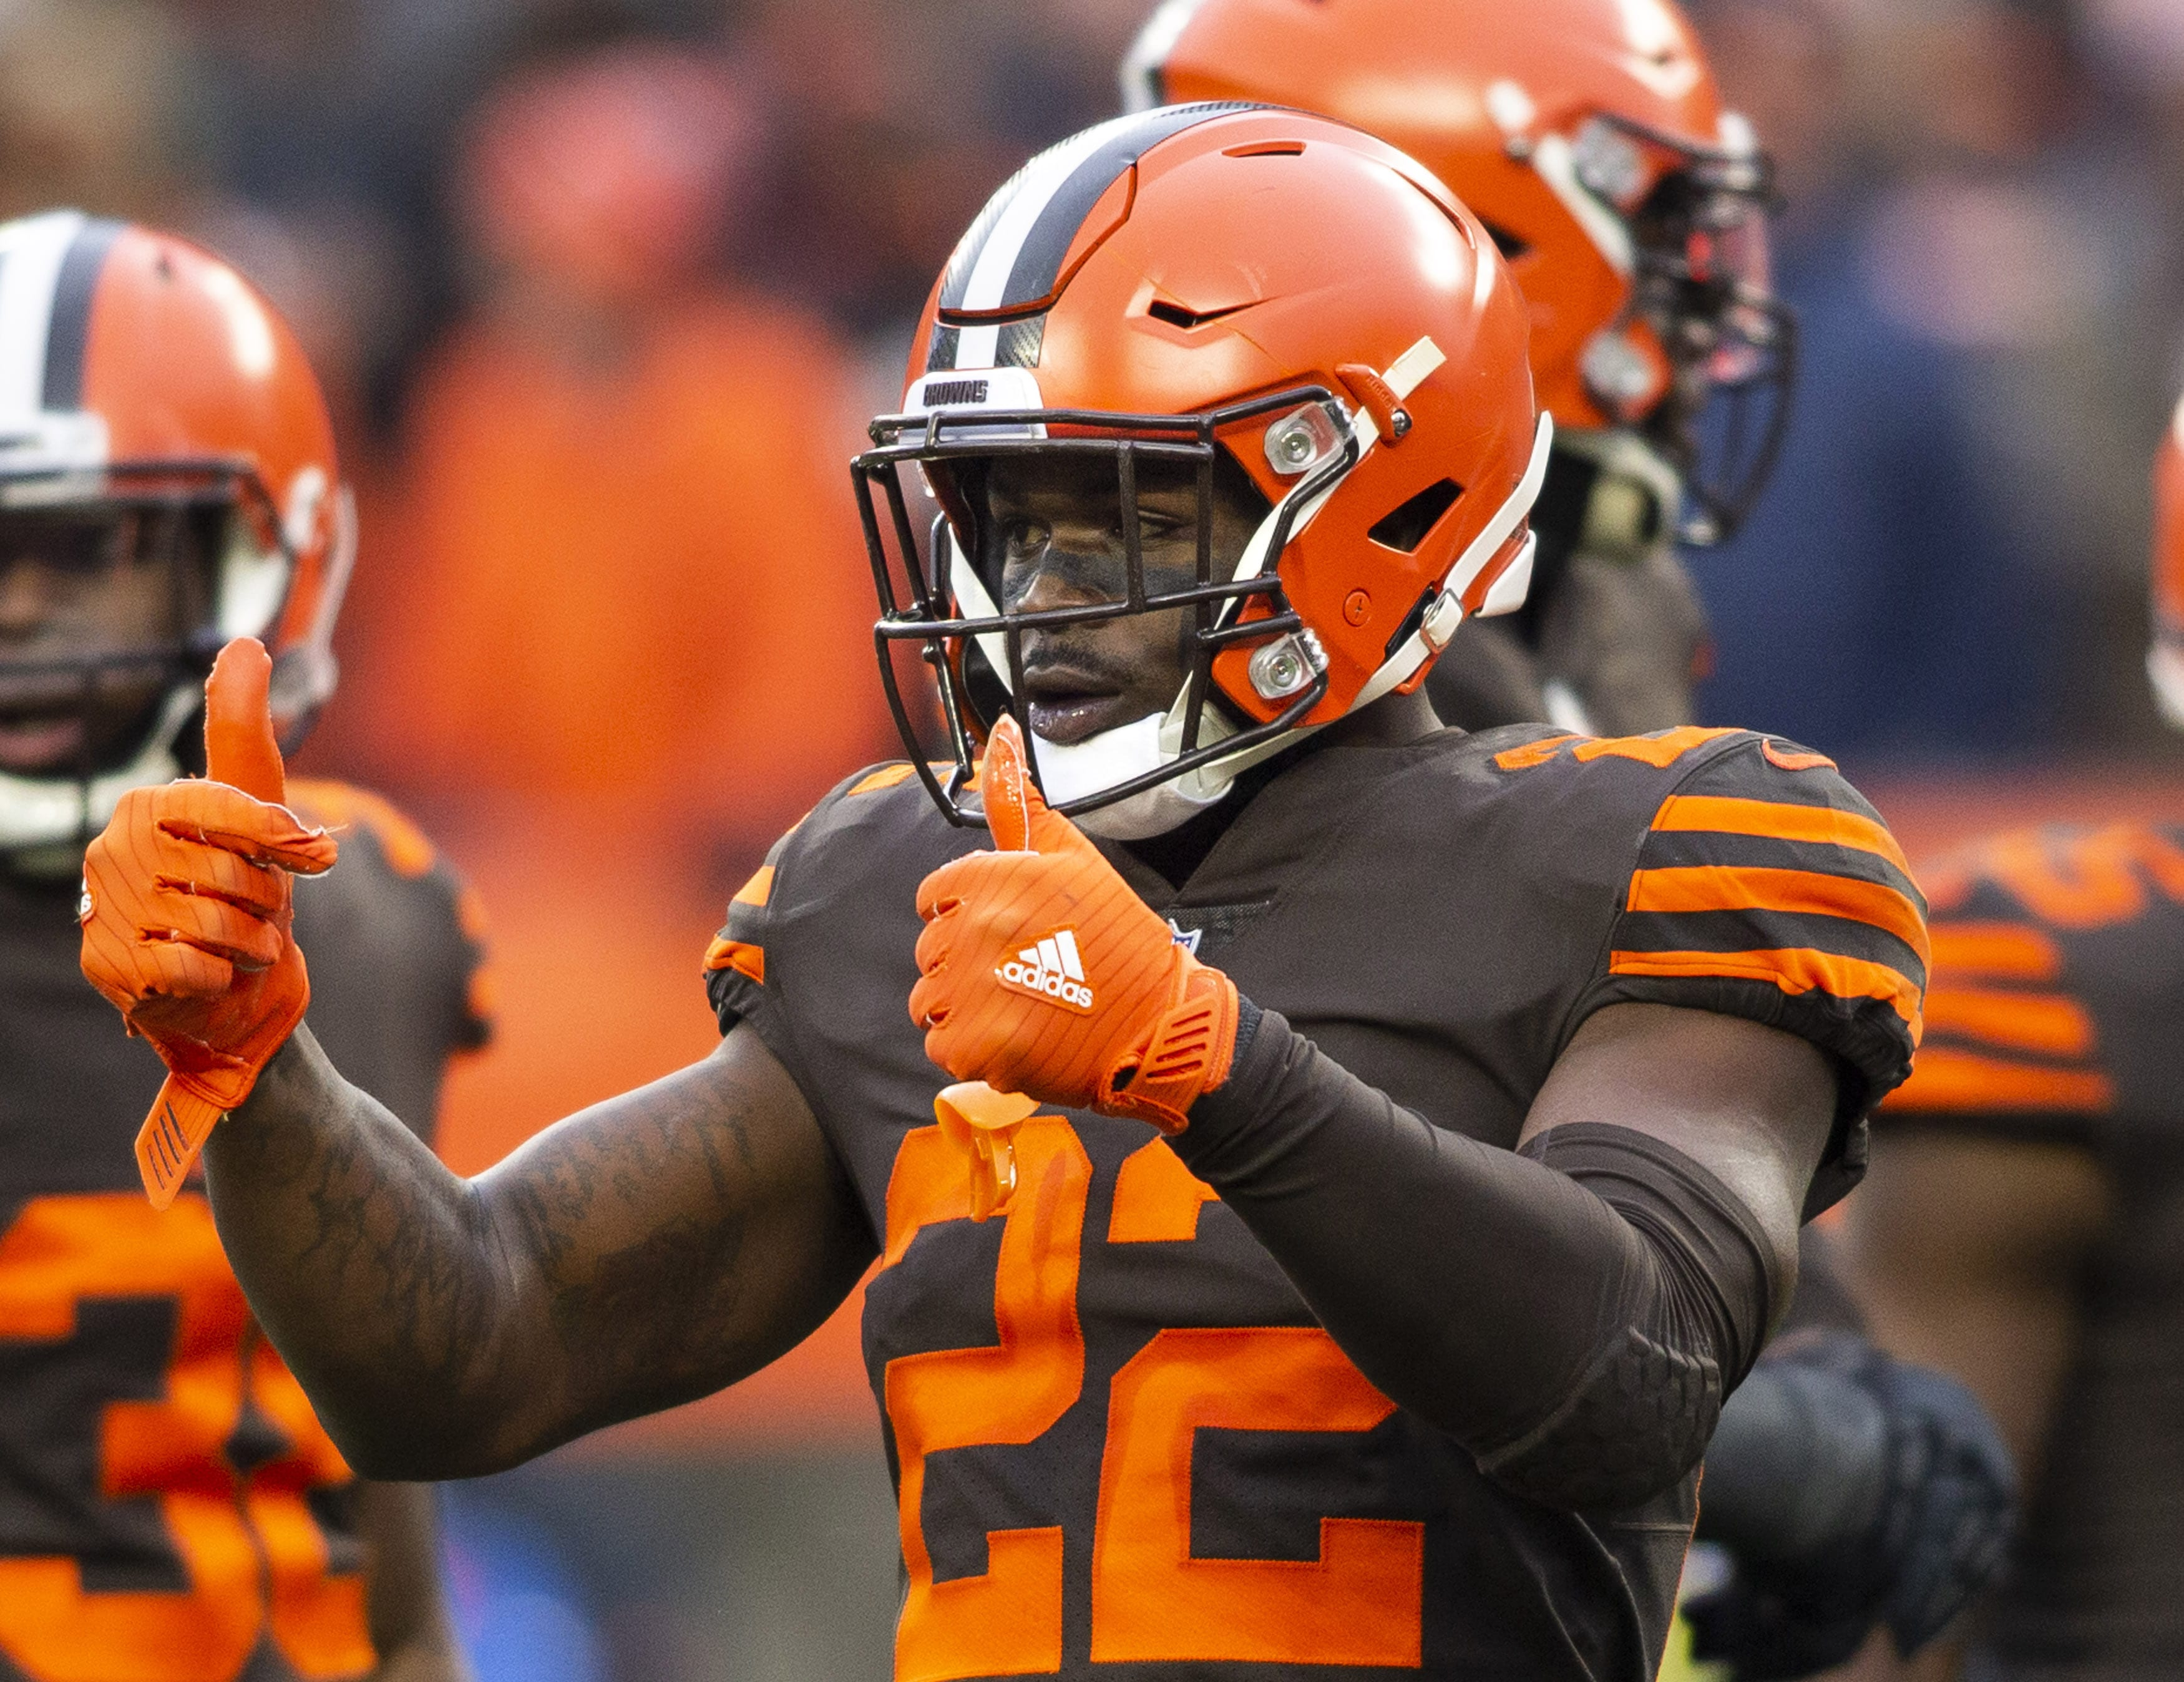 The New York Giants traded Odell Beckham Jr. to the Cleveland Browns that sent Jabrill Peppers to New York.